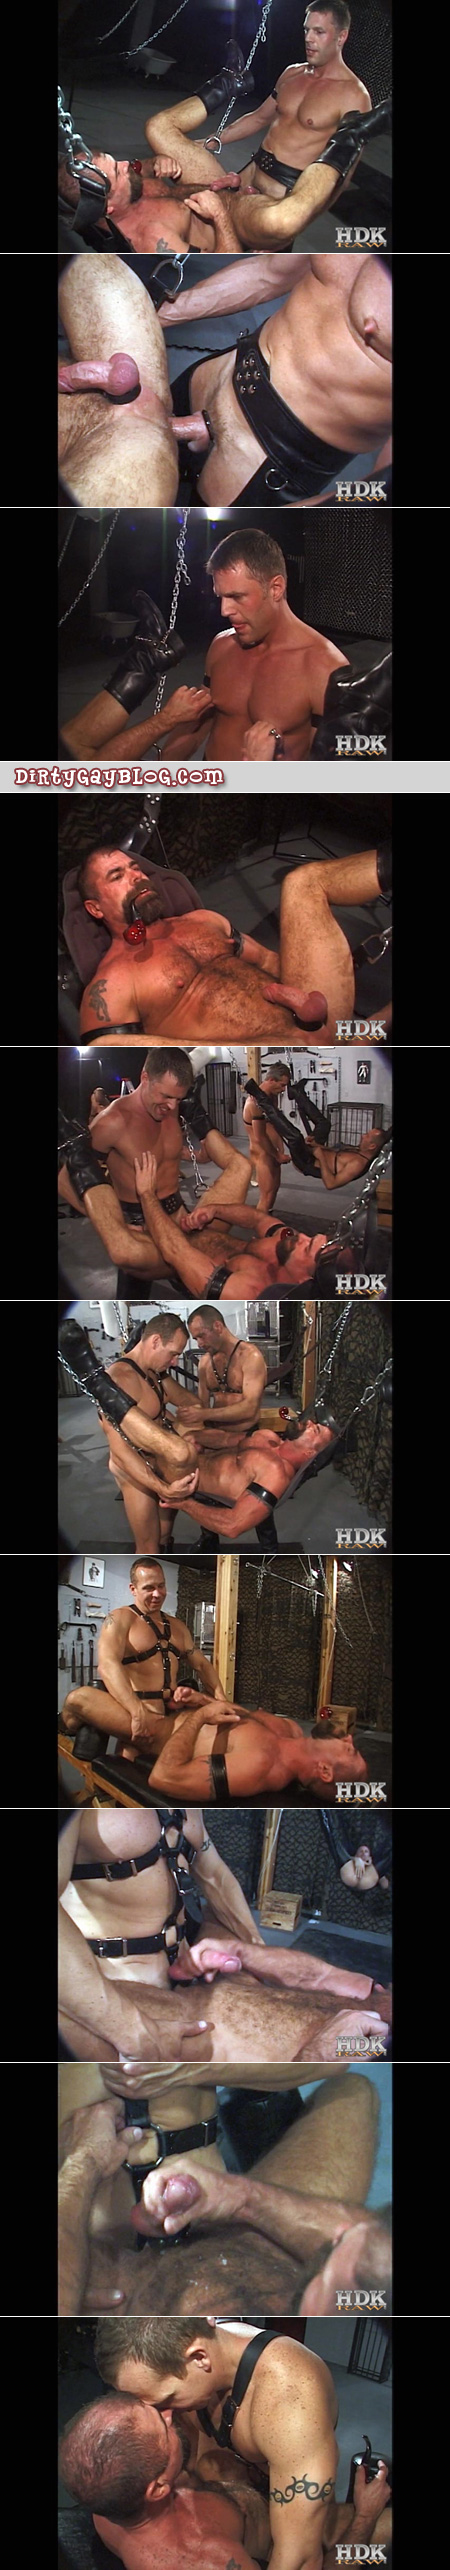 Bareback leather orgy among older men, including a hairy pipe-smoking Daddy being fucked in a sling.